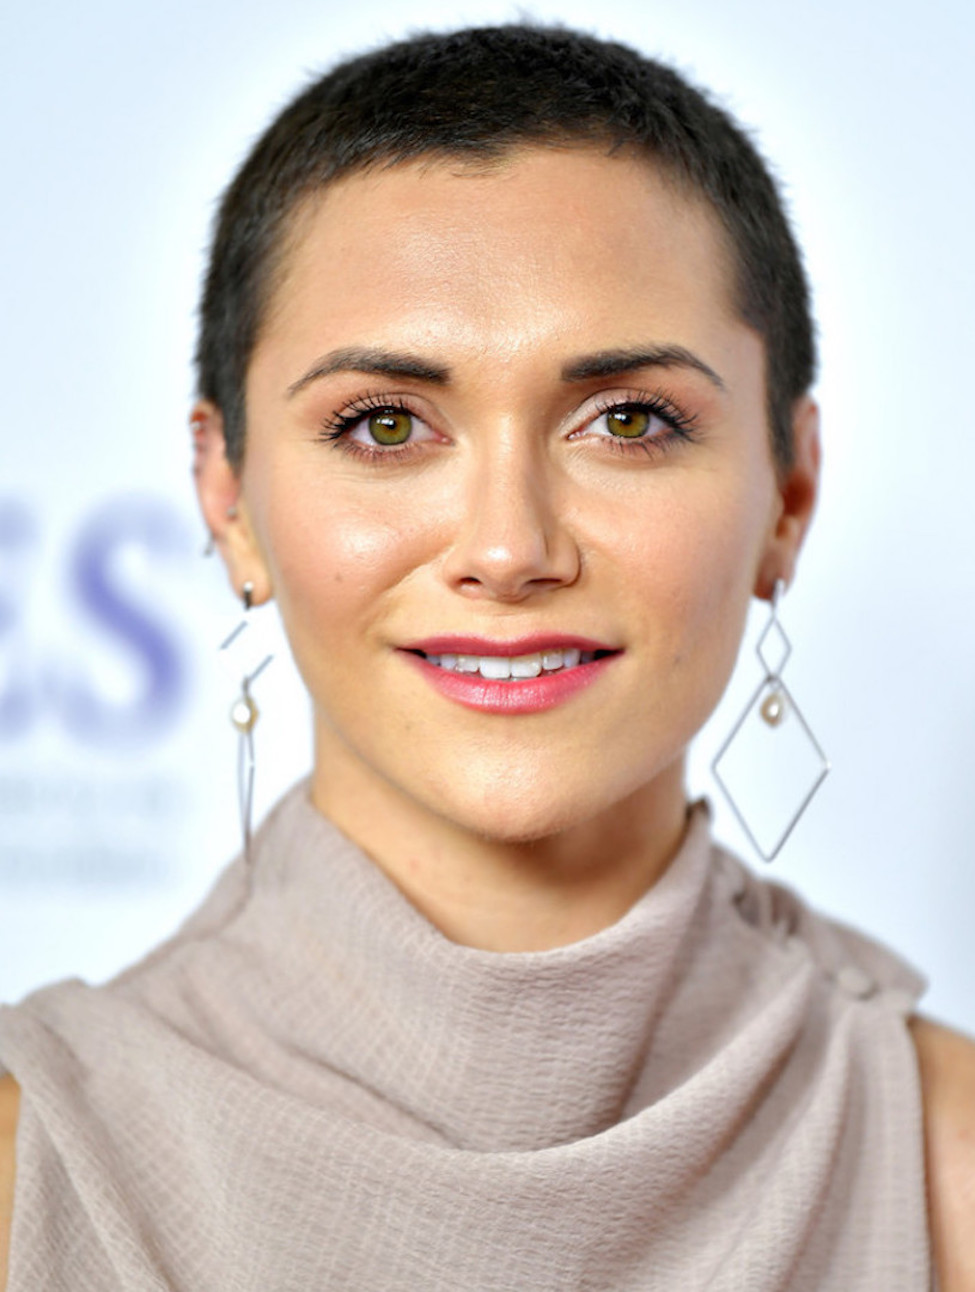 Pics Alyson Stoner nudes (92 photos), Ass, Sideboobs, Feet, braless 2017